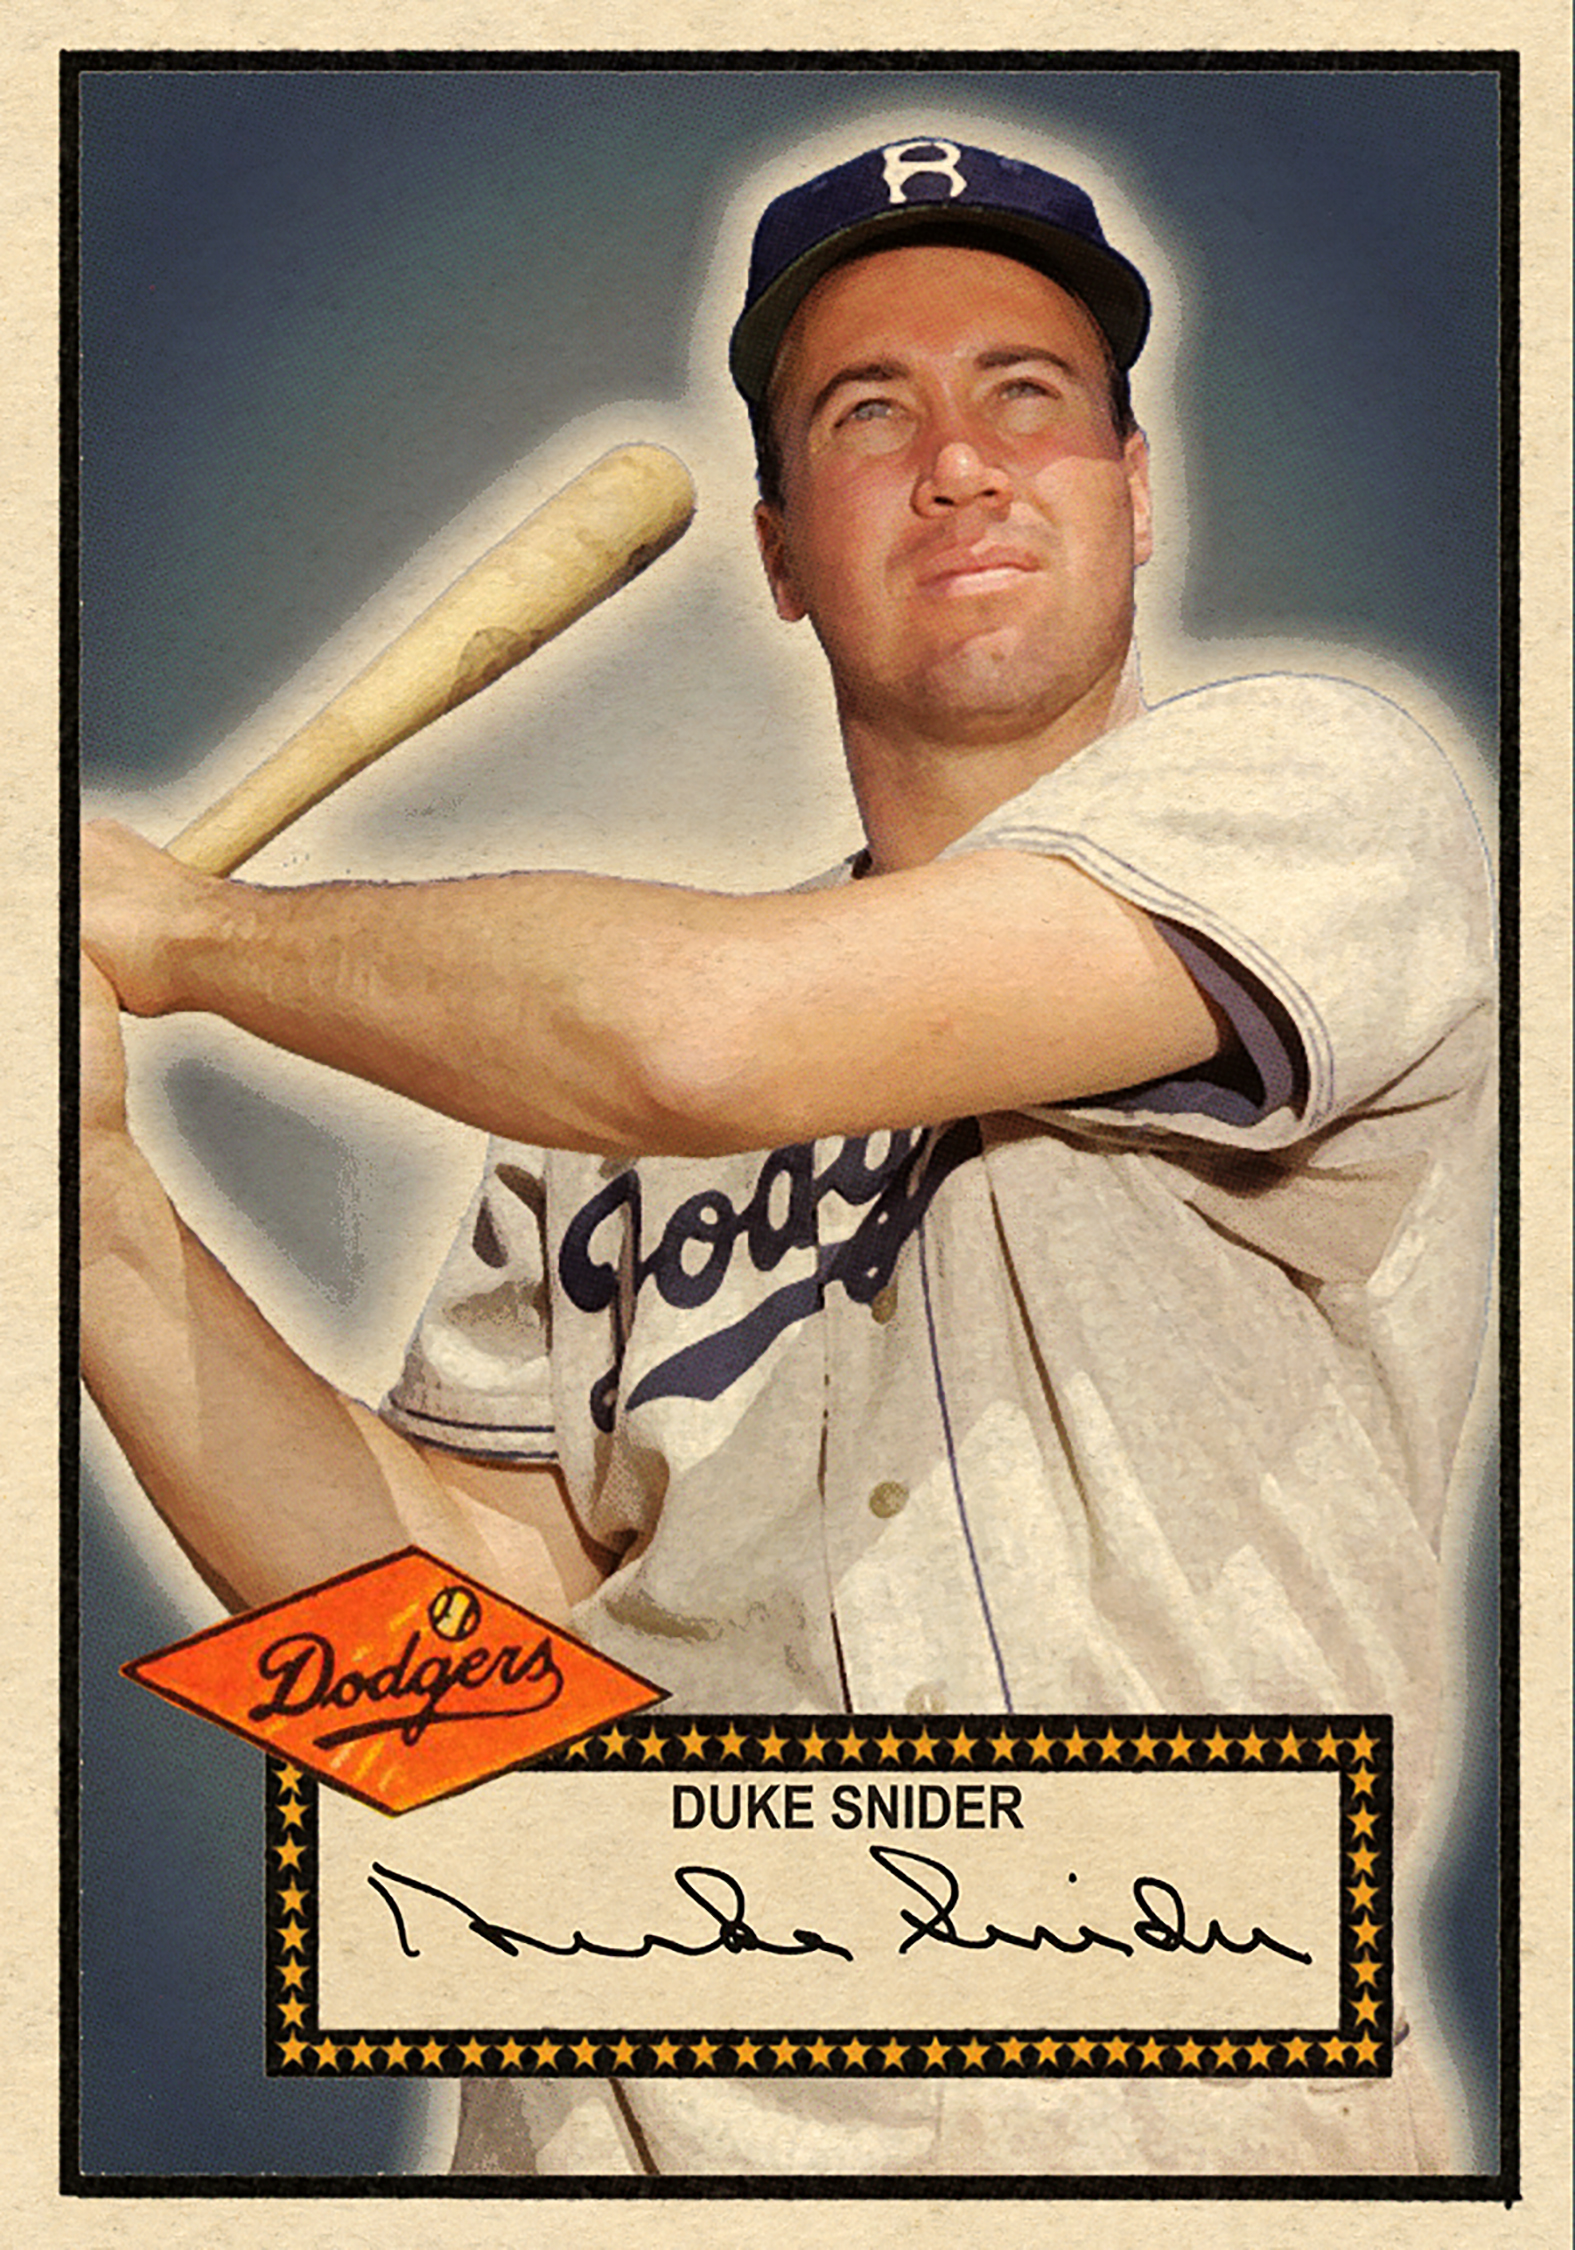 1952 BASEBALL STARS SERIES #100 DUKE SNIDER 3/6/17 Auction Closes at $293.00 USD - Current Poulation of 2